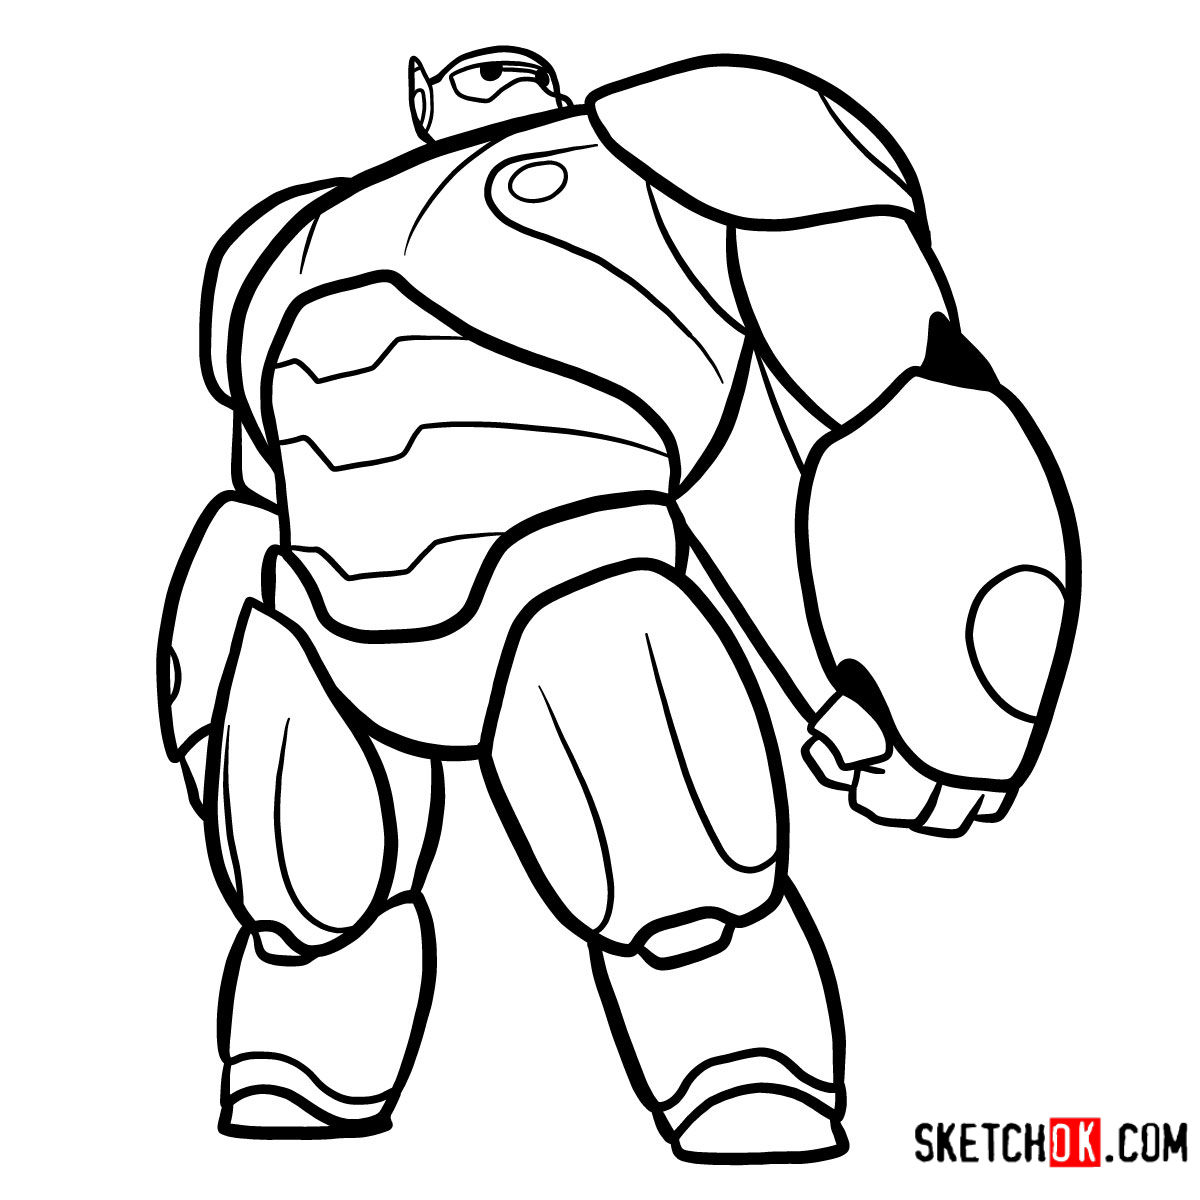 How to draw Baymax in his red armored suit